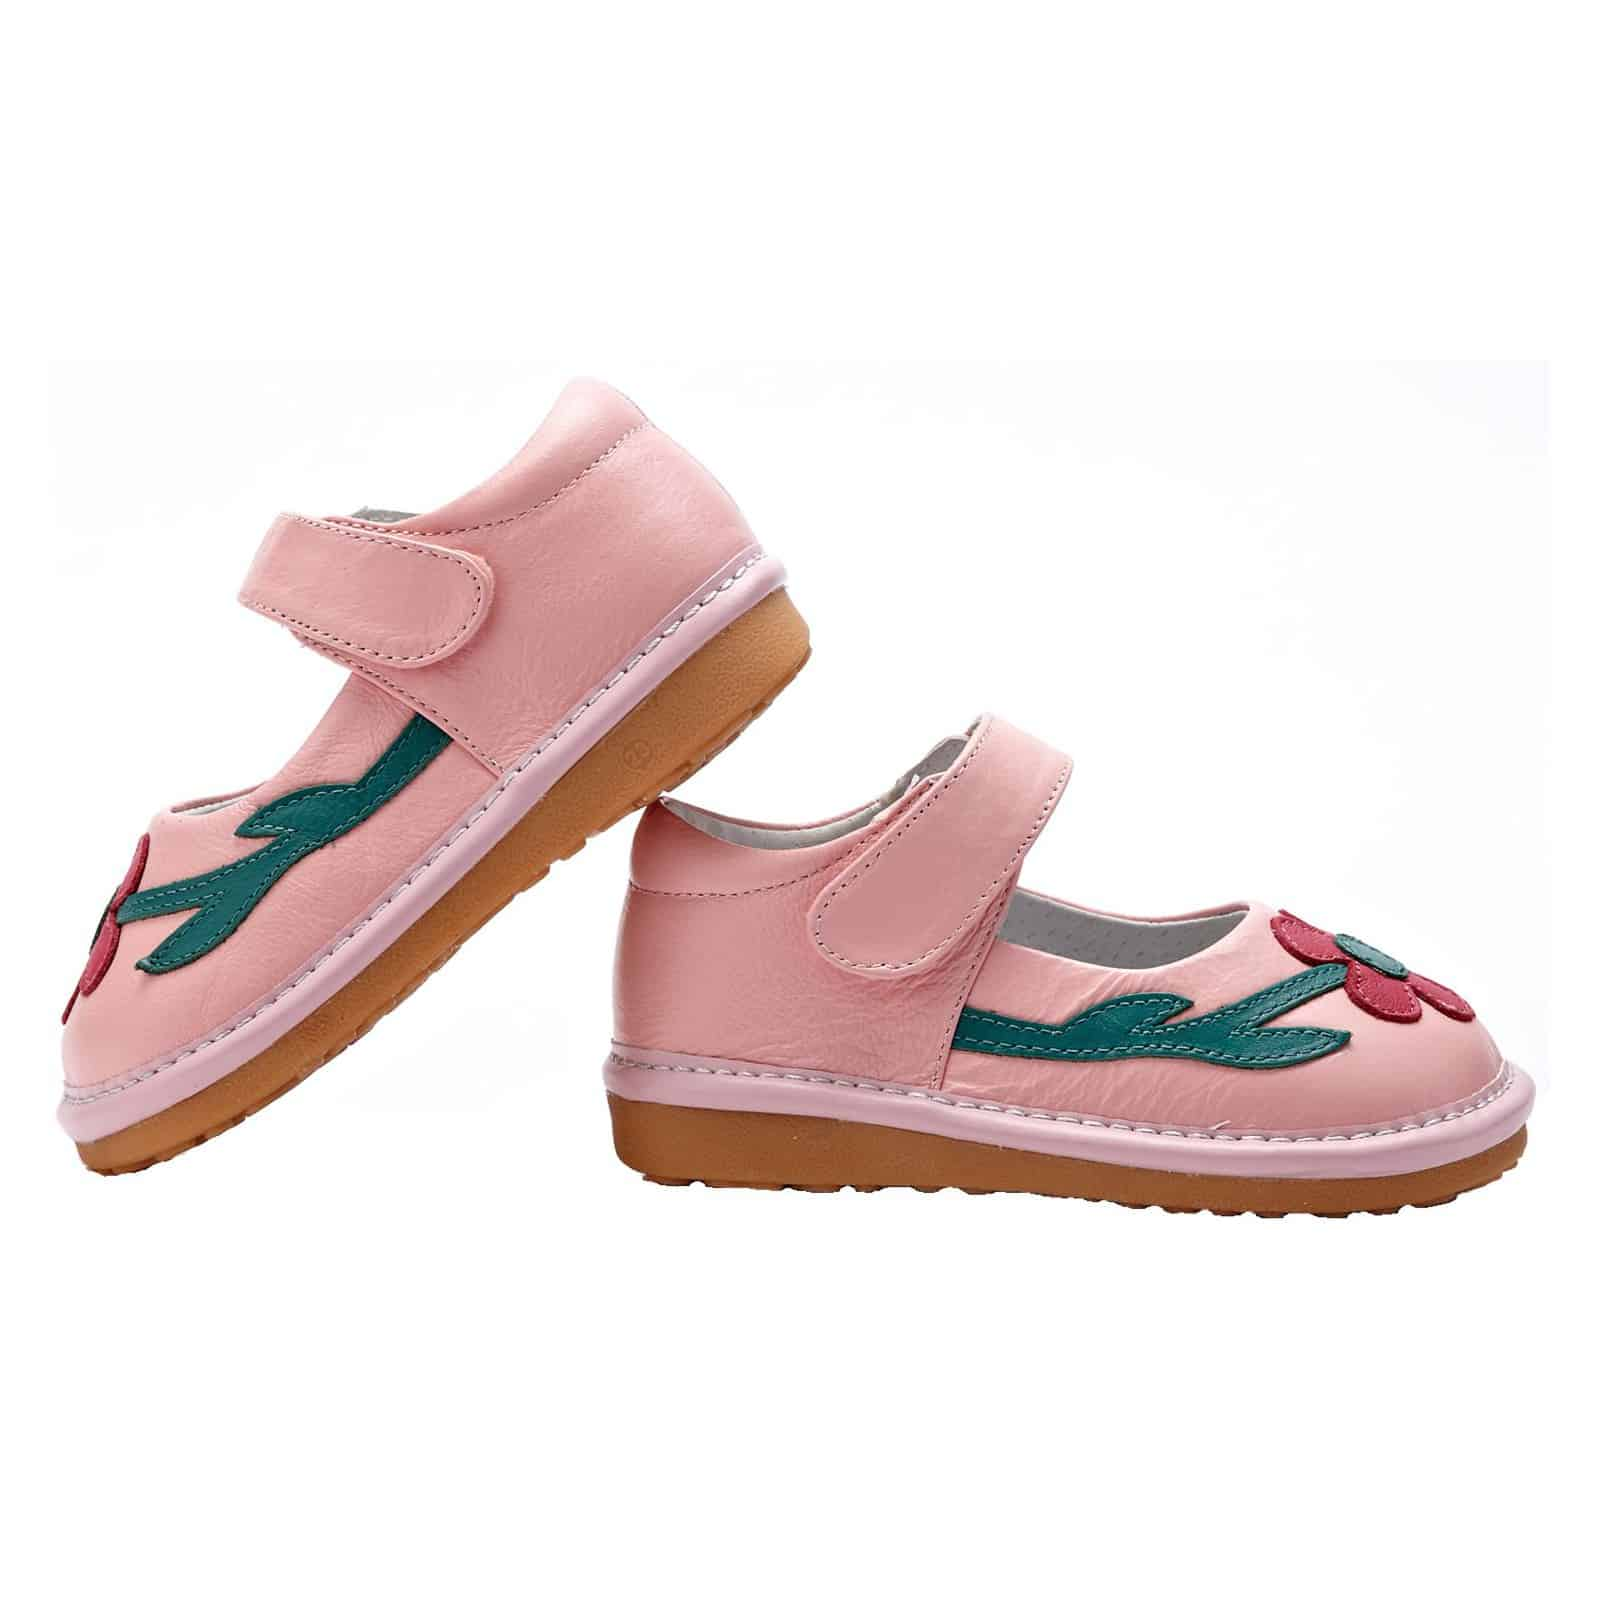 Squeaky Kids Shoes Uk